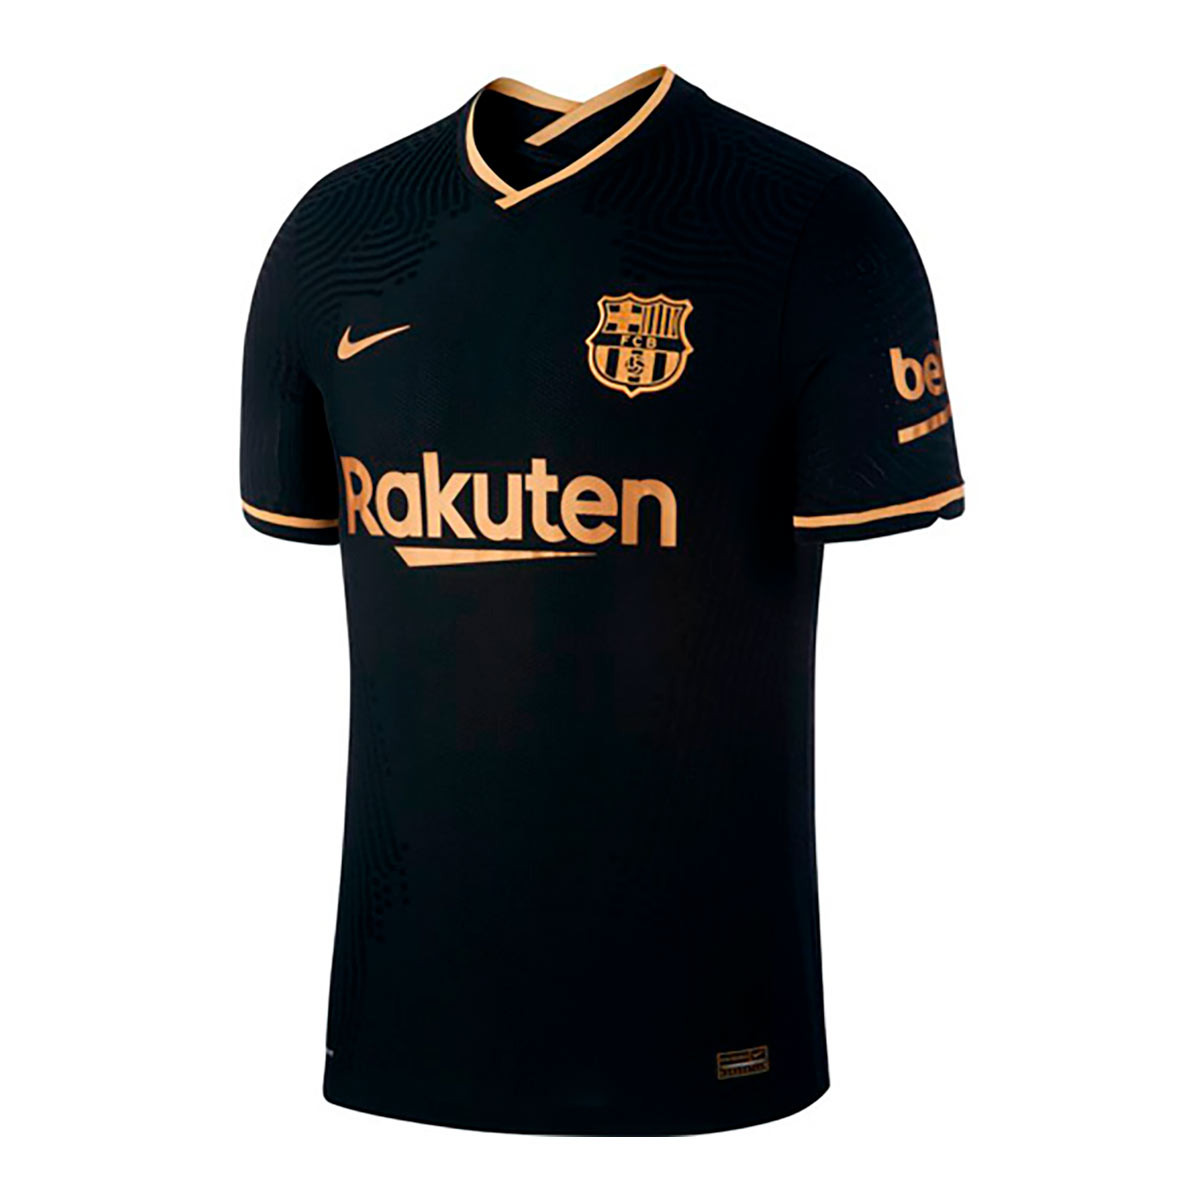 telegrama perro Posibilidades  Jersey Nike FC Barcelona Vapor Match 2020-2021 Away Black-Metallic gold -  Football store Fútbol Emotion